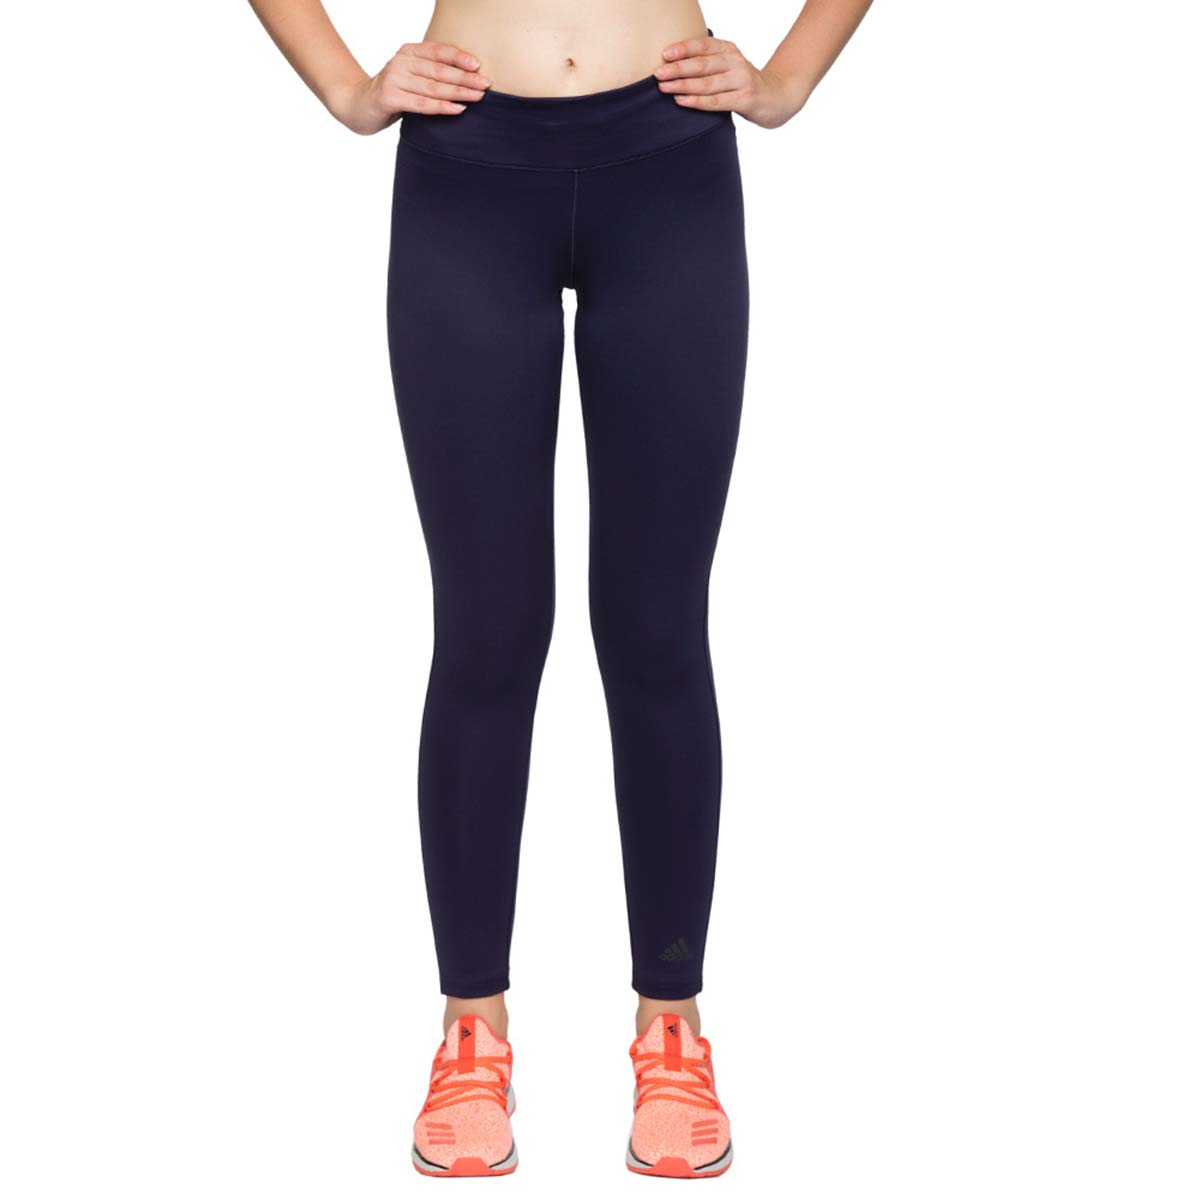 fd8a10a3942 Adidas D2M Womens Long Tights (Deep Blue) Online at Lowest Price in India